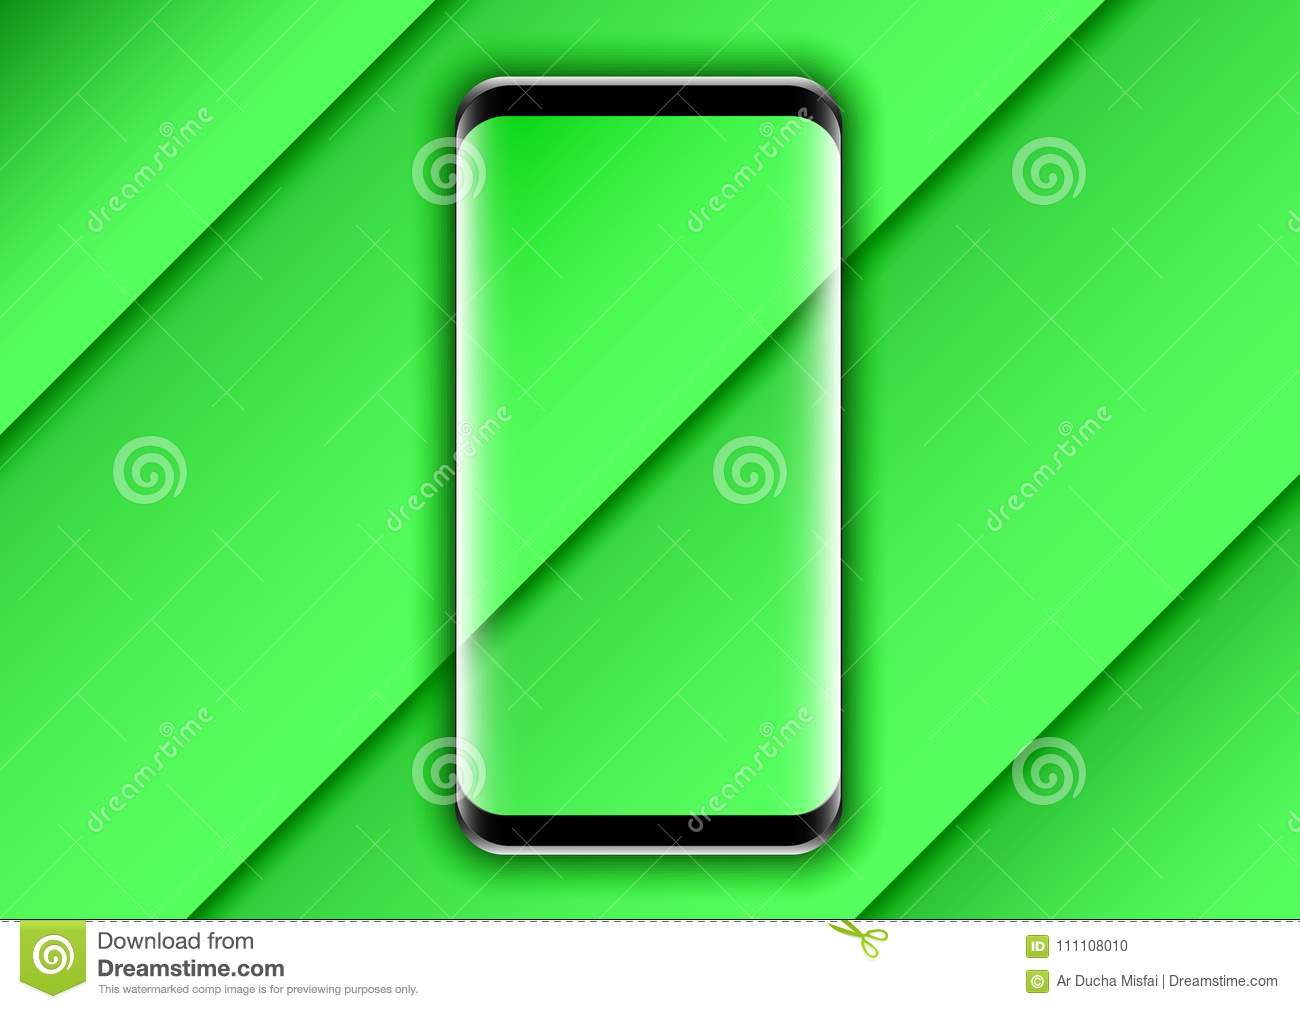 Background Design Green Texture For Phone Stock Vector